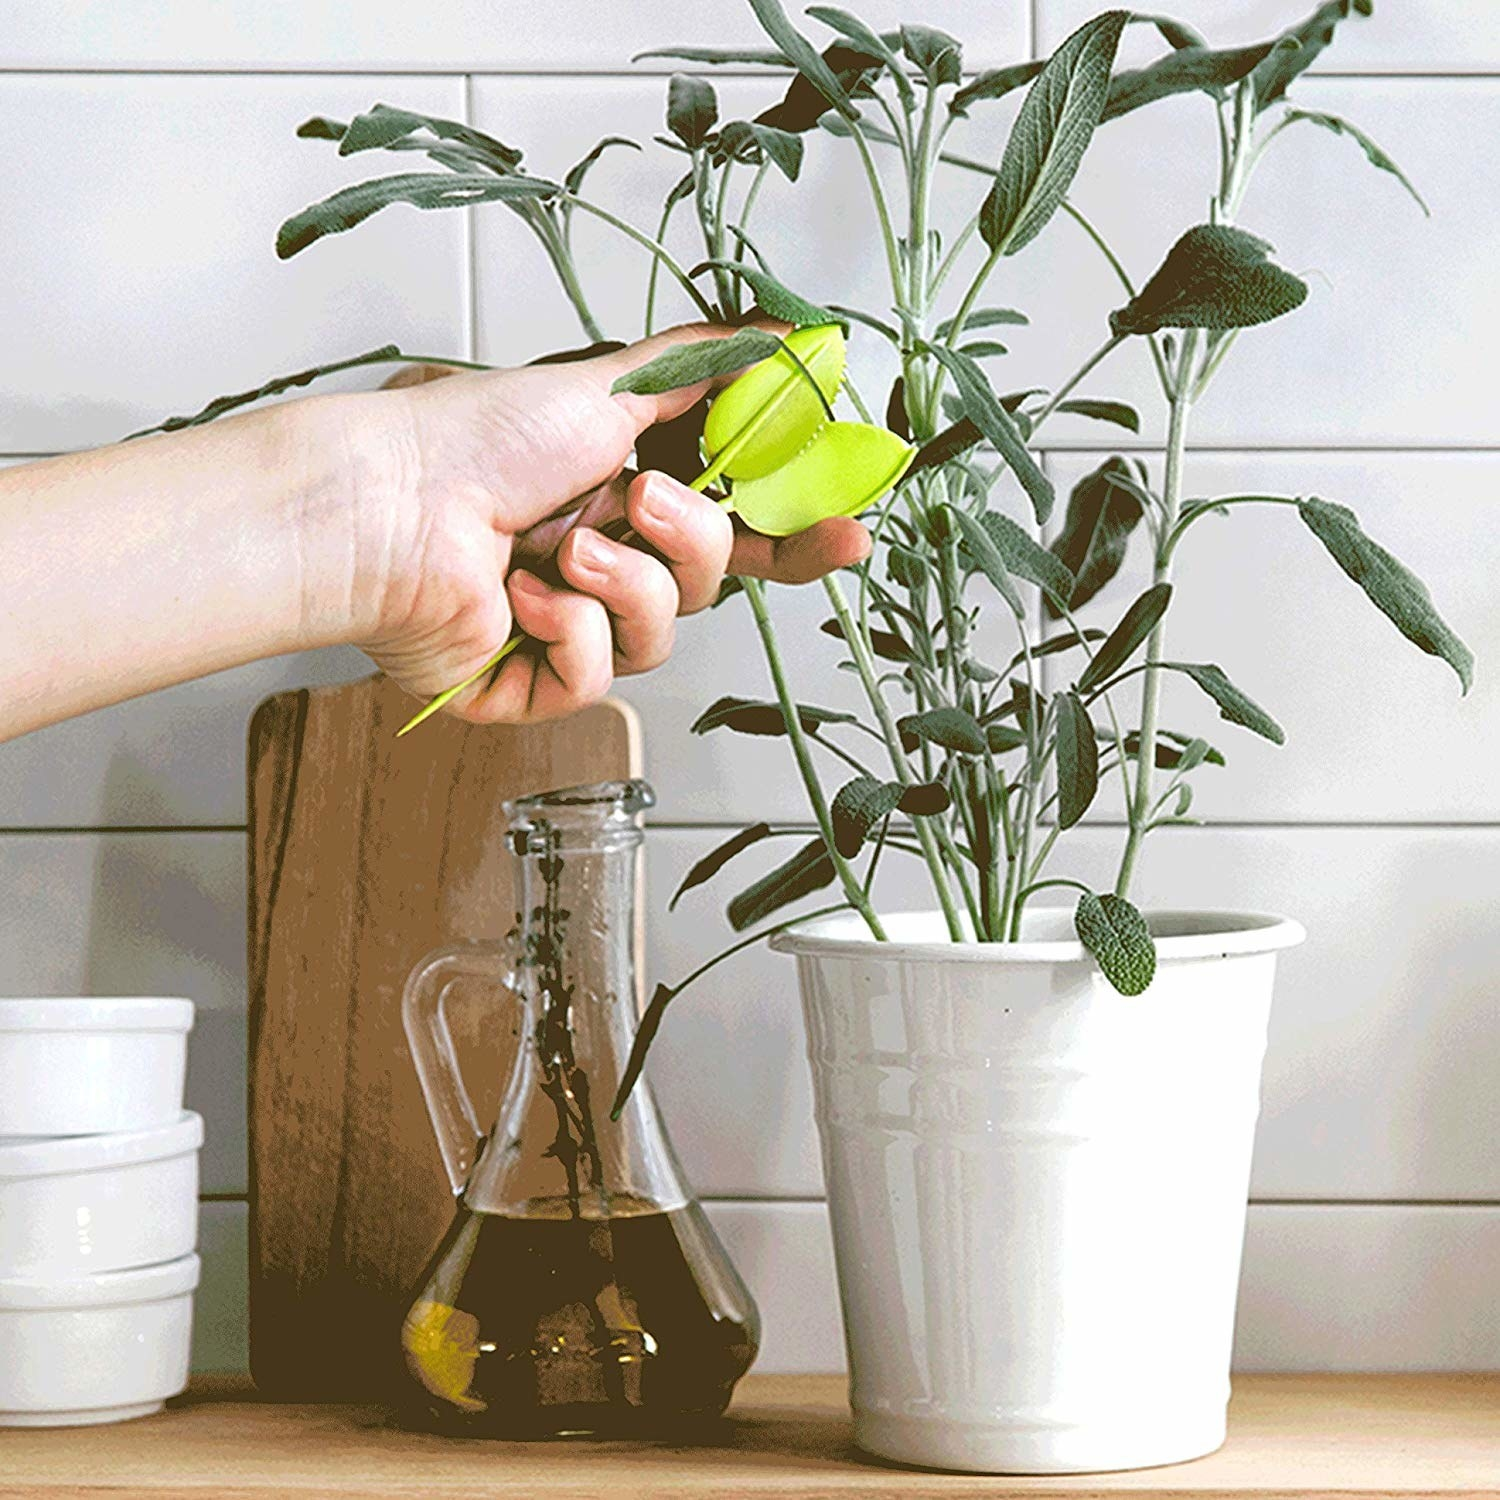 model clips sage plant with scissors shaped like two leaves